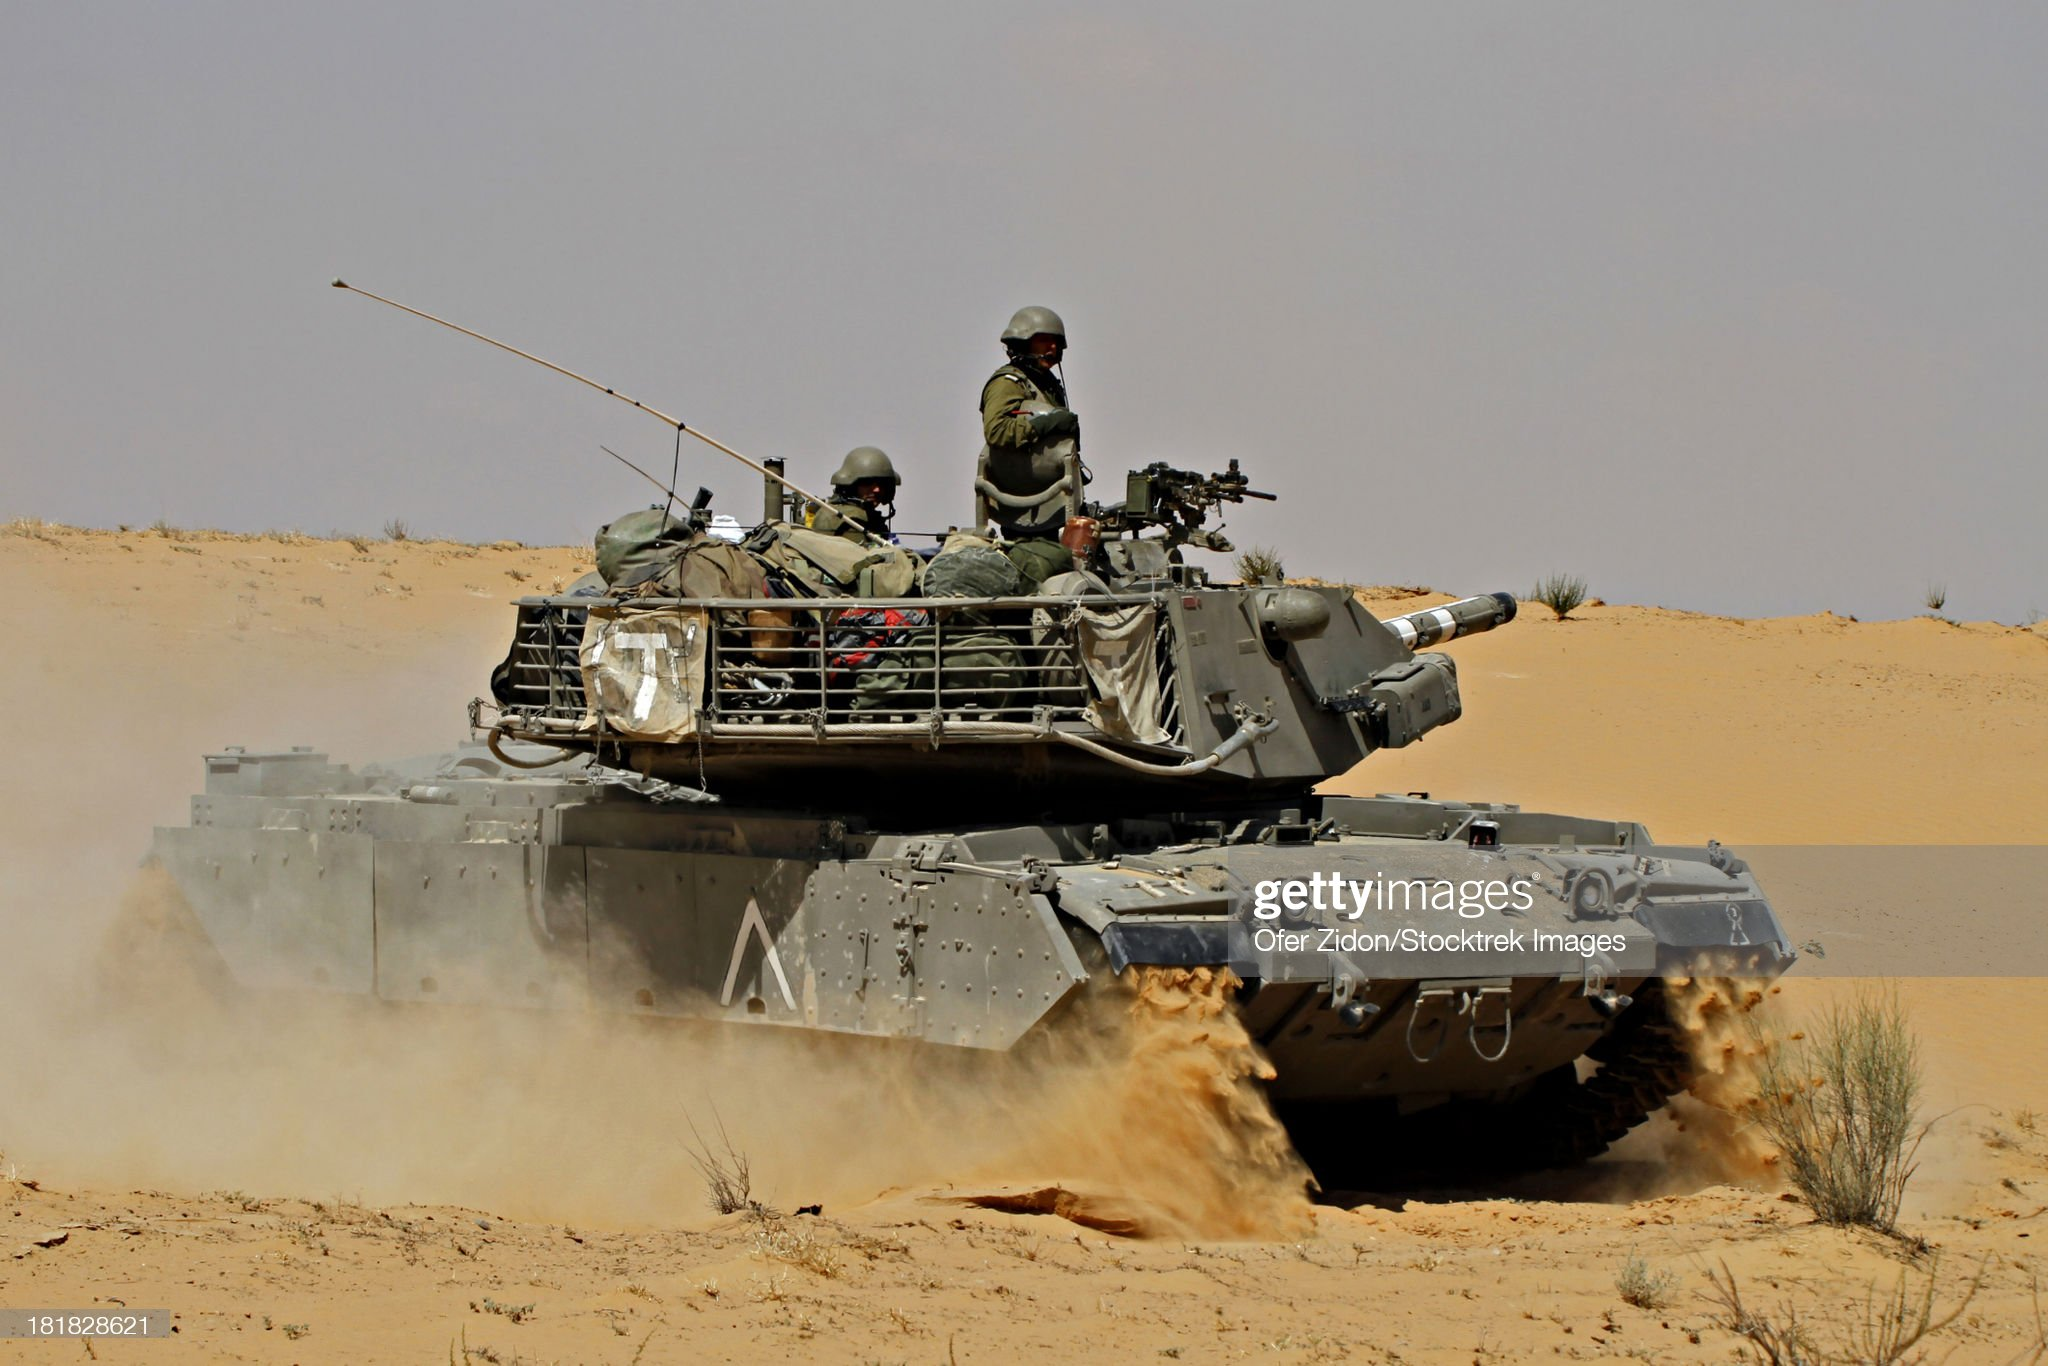 https://media.gettyimages.com/photos/an-israel-defense-force-magach-7-main-battle-tank-during-an-exercise-picture-id181828621?s=2048x2048